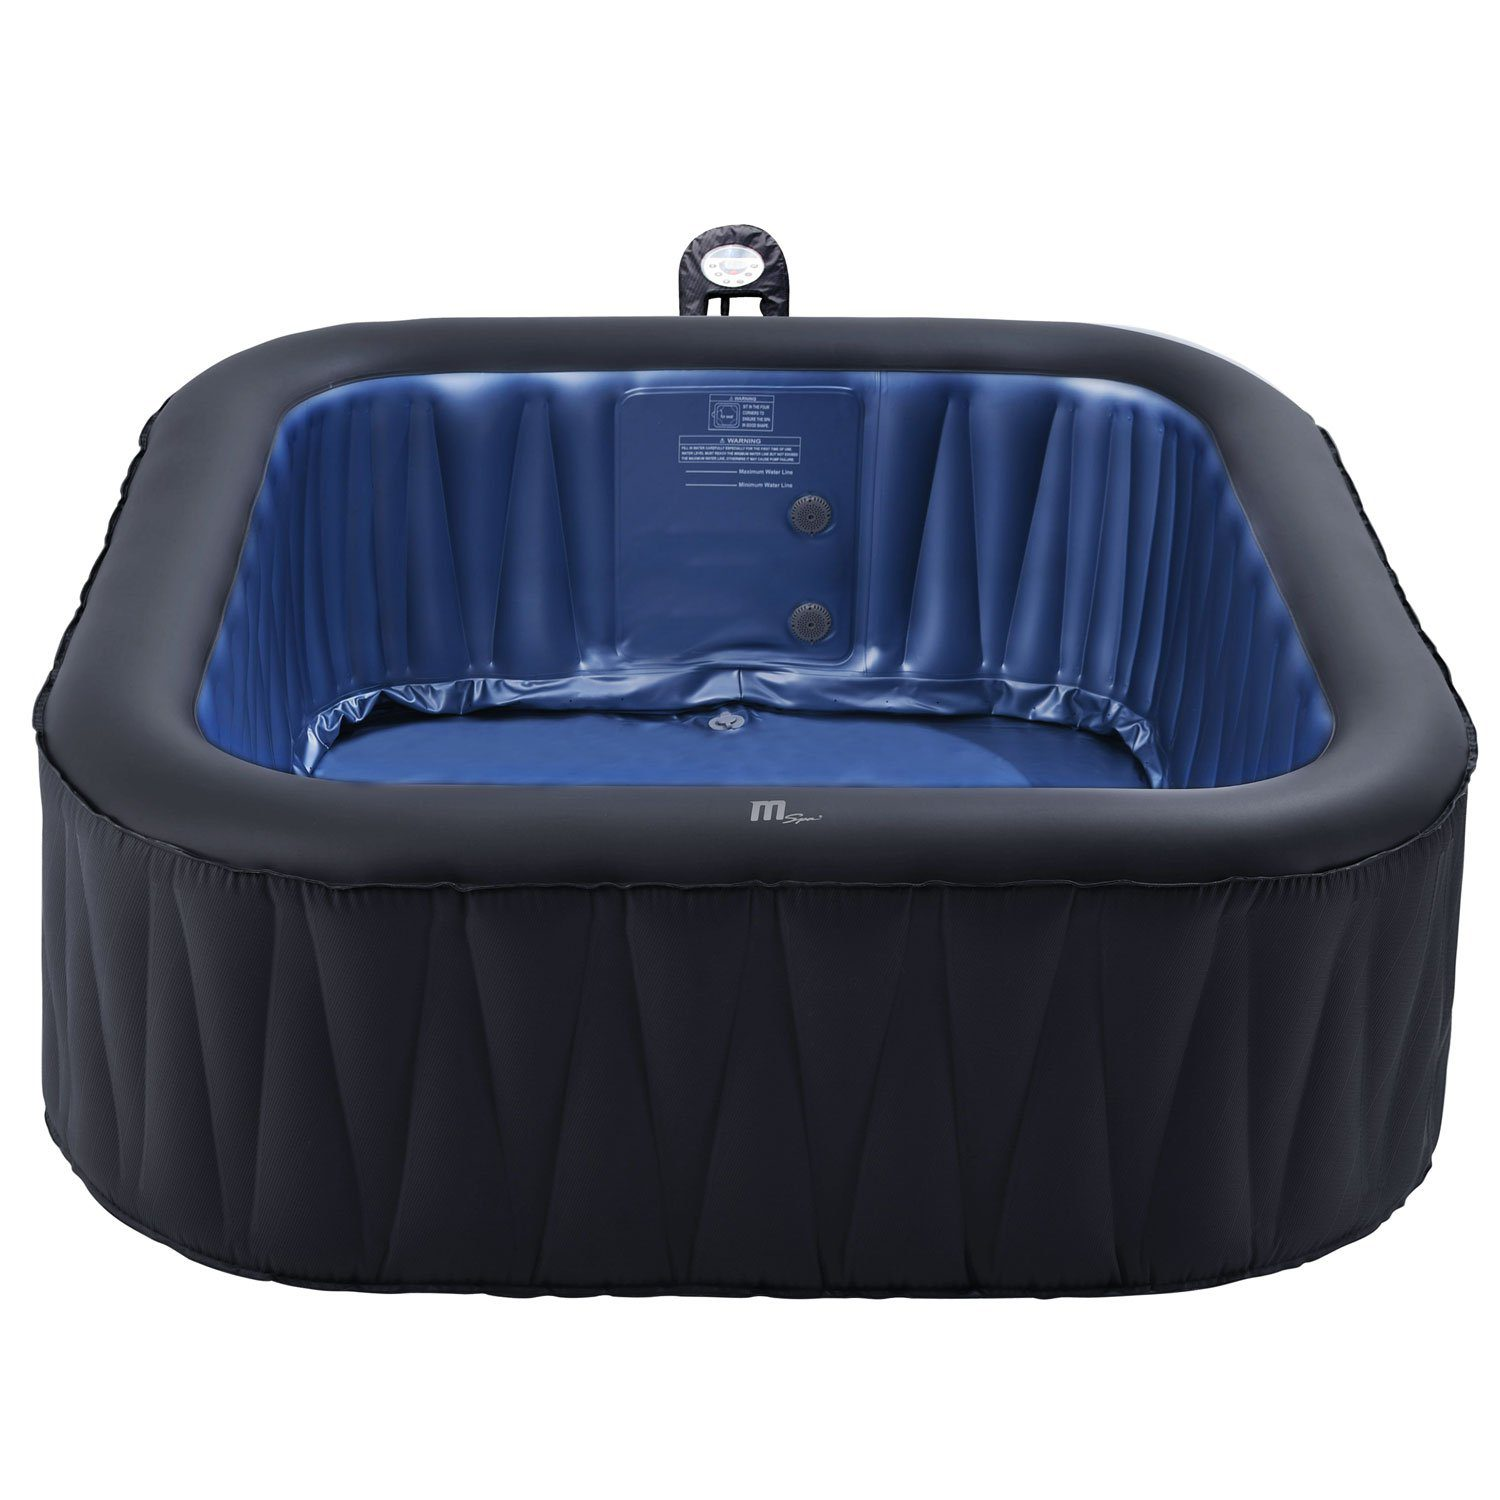 Modern-Depo Inflatable Hot Tubs